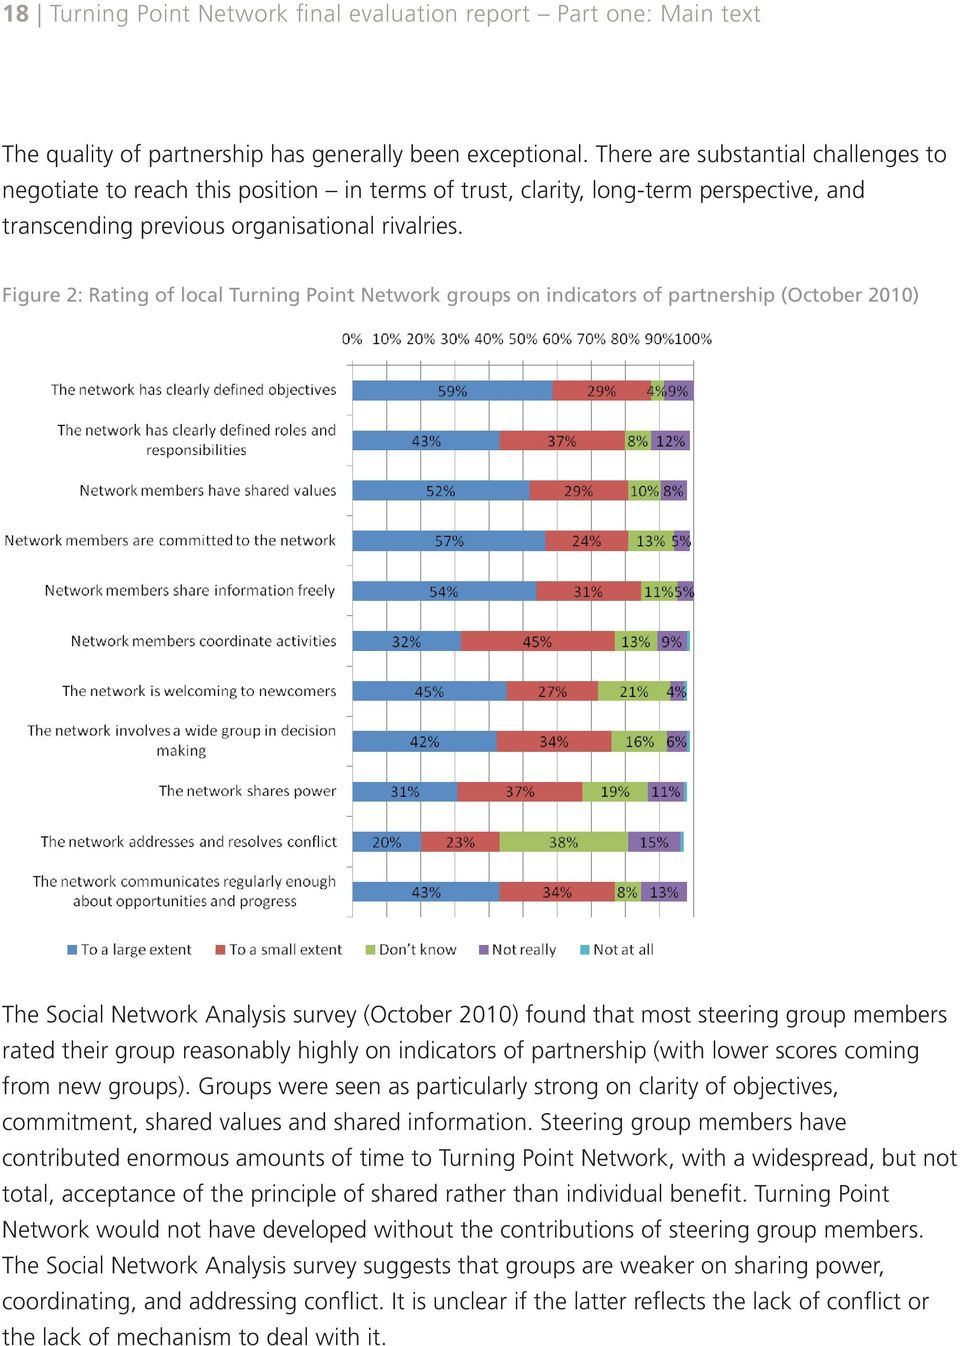 Figure 2: Rating of local Turning Point Network groups on indicators of partnership (October 2010) The Social Network Analysis survey (October 2010) found that most steering group members rated their